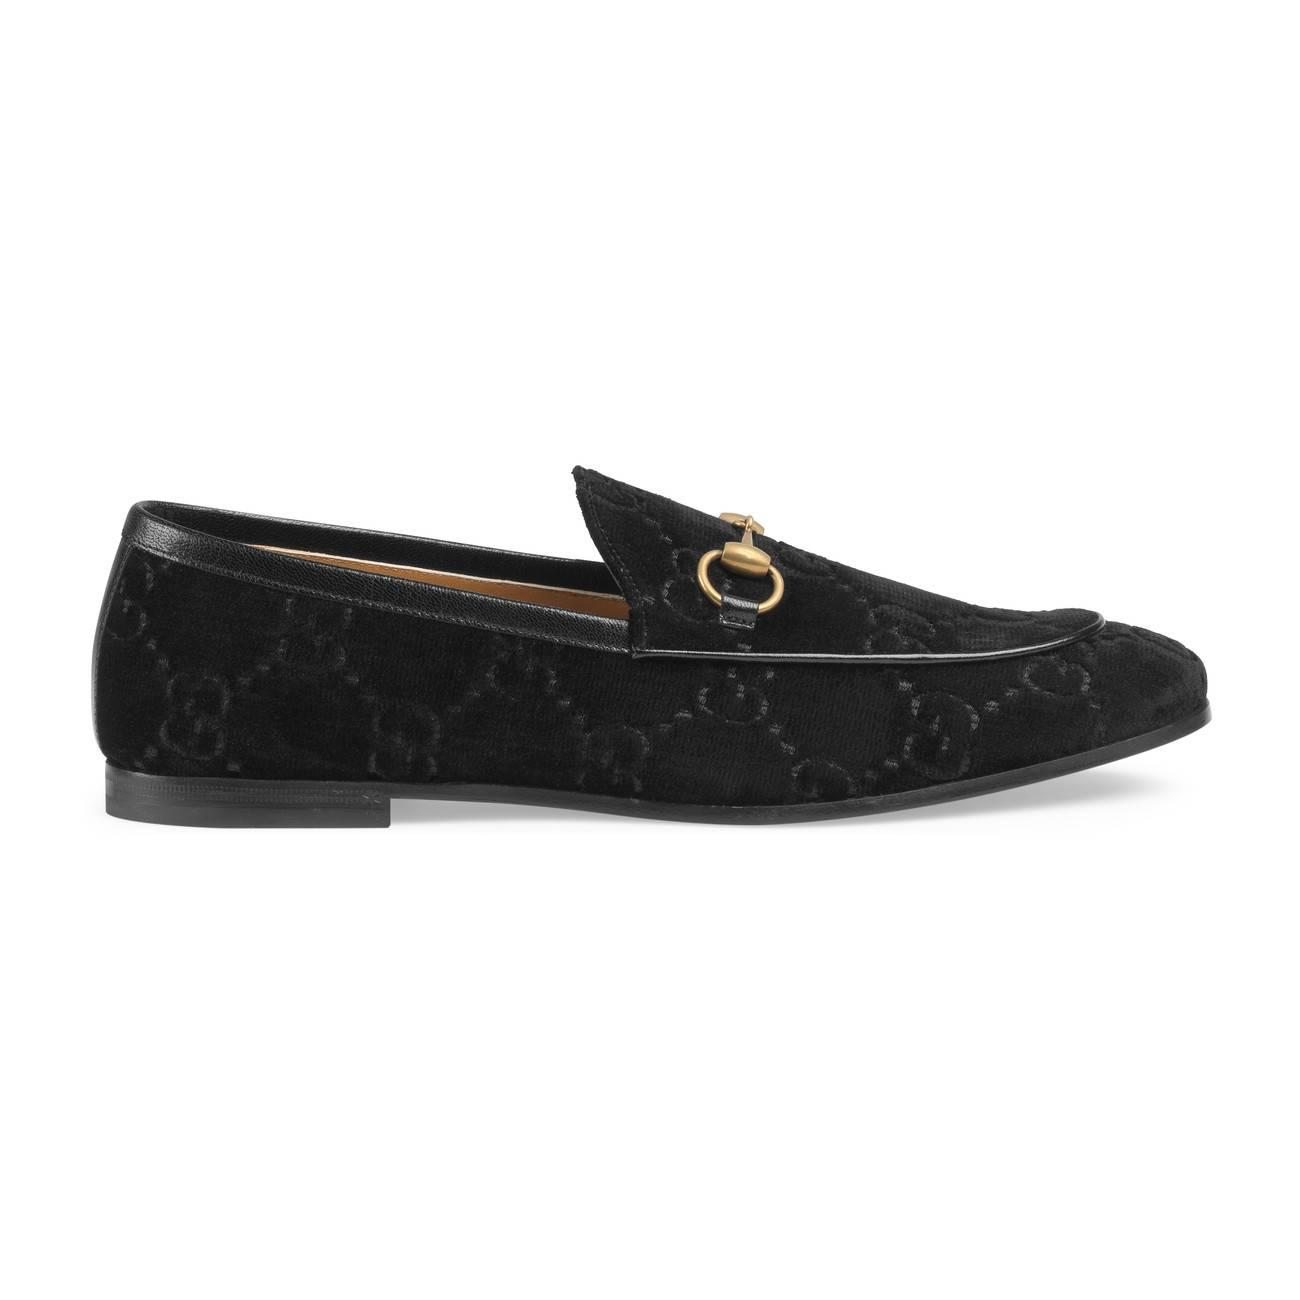 a9788e85eb0 Lyst - Gucci Jordaan Gg Velvet Loafer in Black for Men - Save 26%